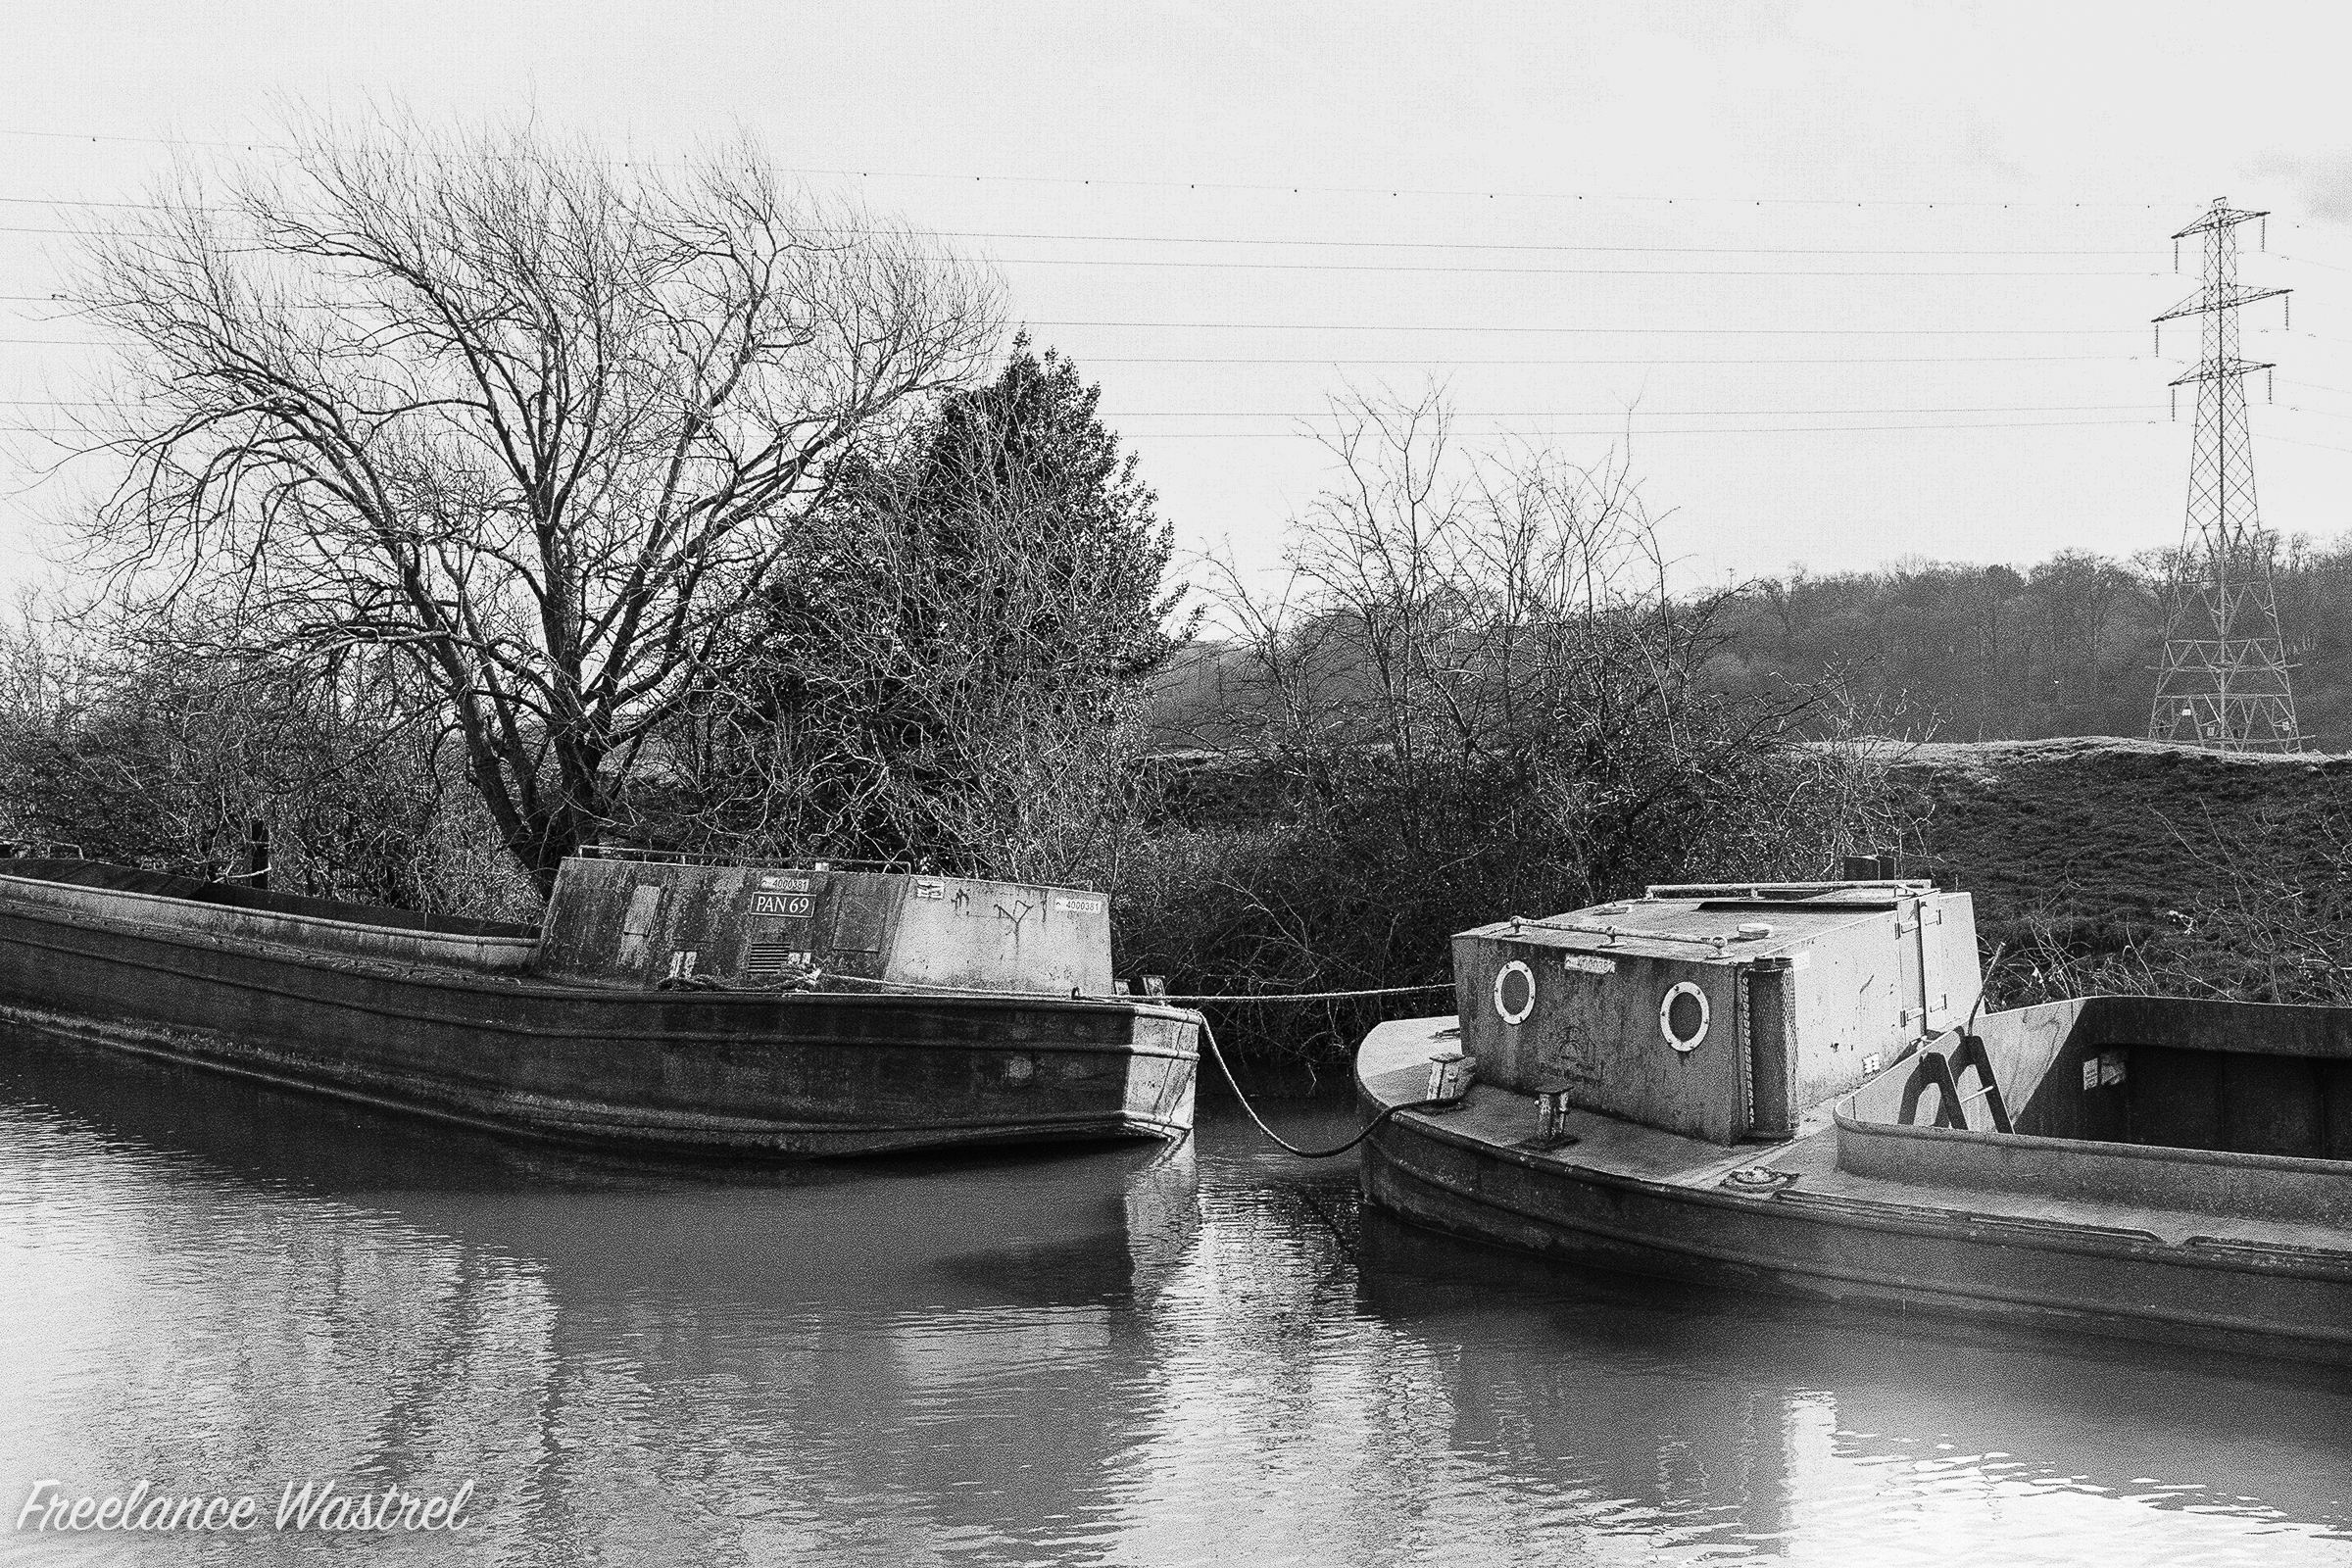 Barges on the Cranfleet Canal, February 2018